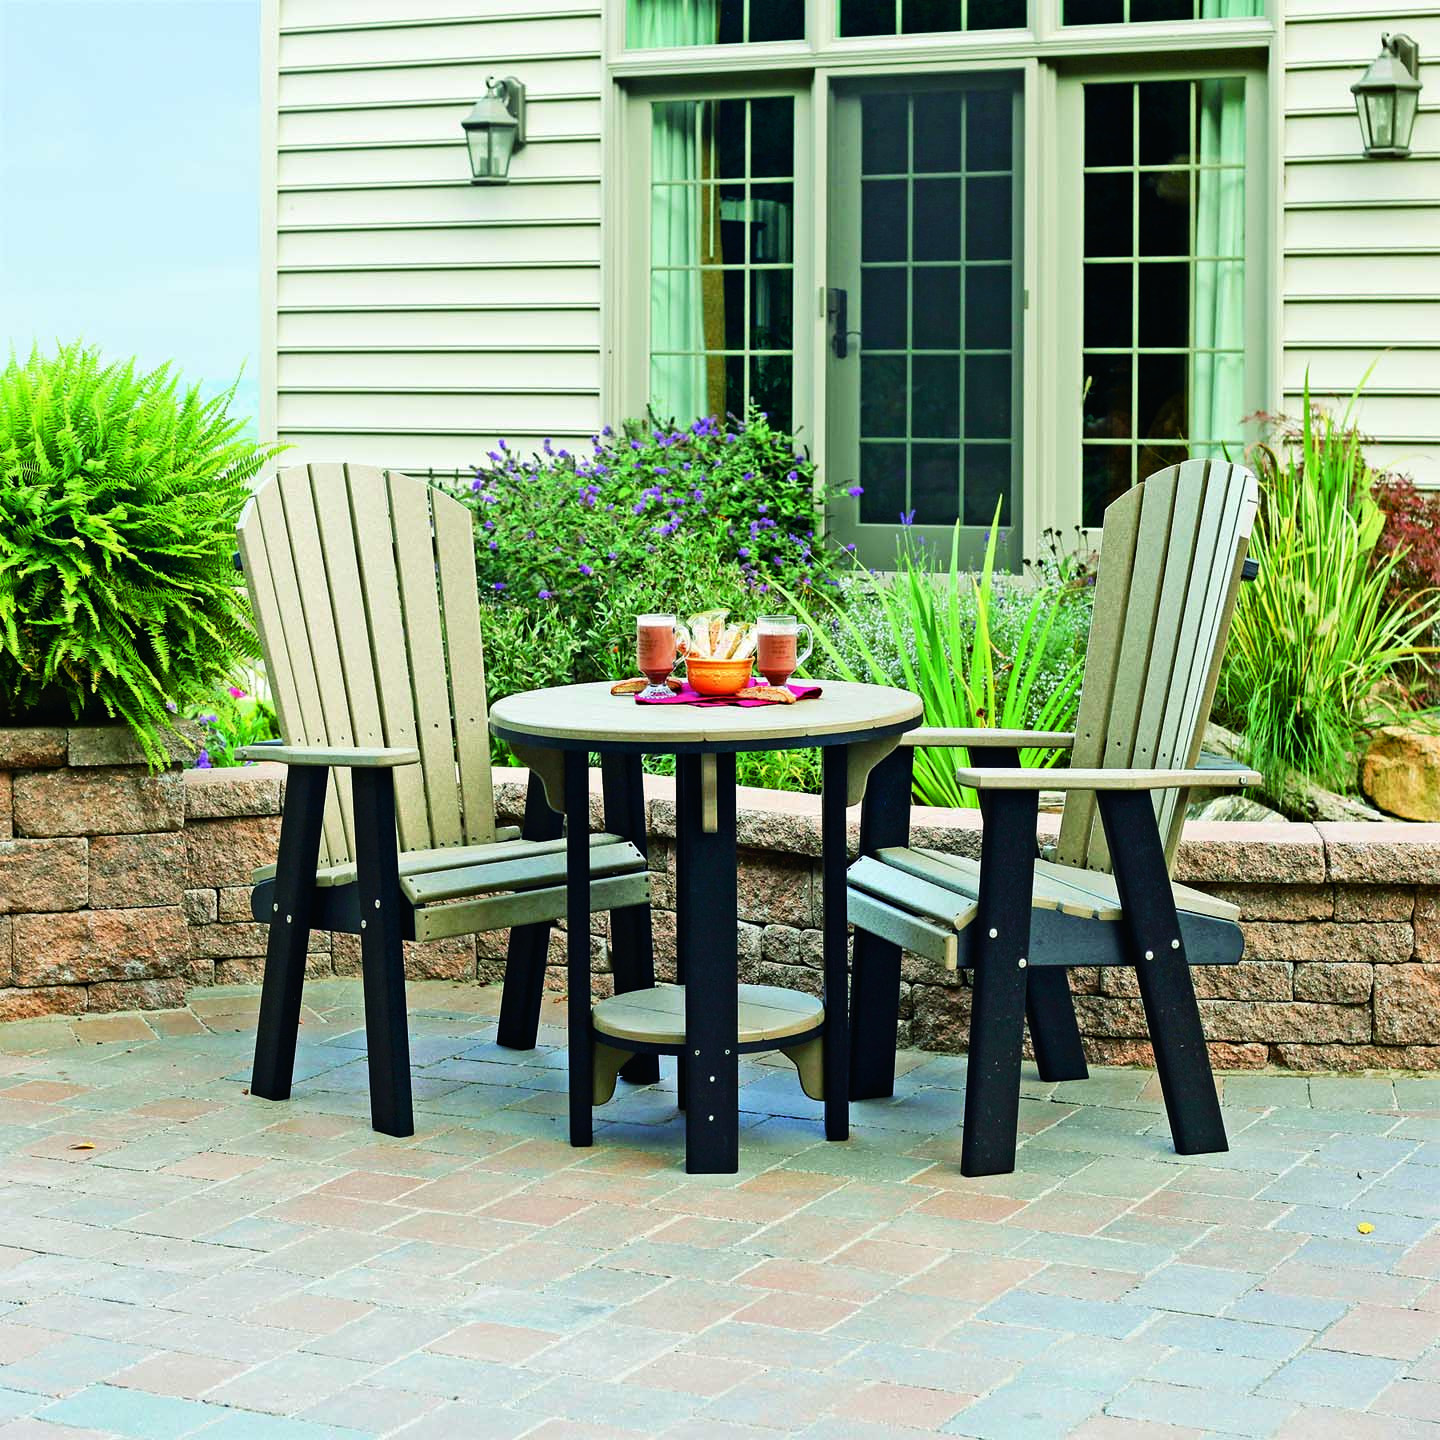 Poly Bistro Chair shown as a set (Other chair & table sold separately) - Weatherwood & Black